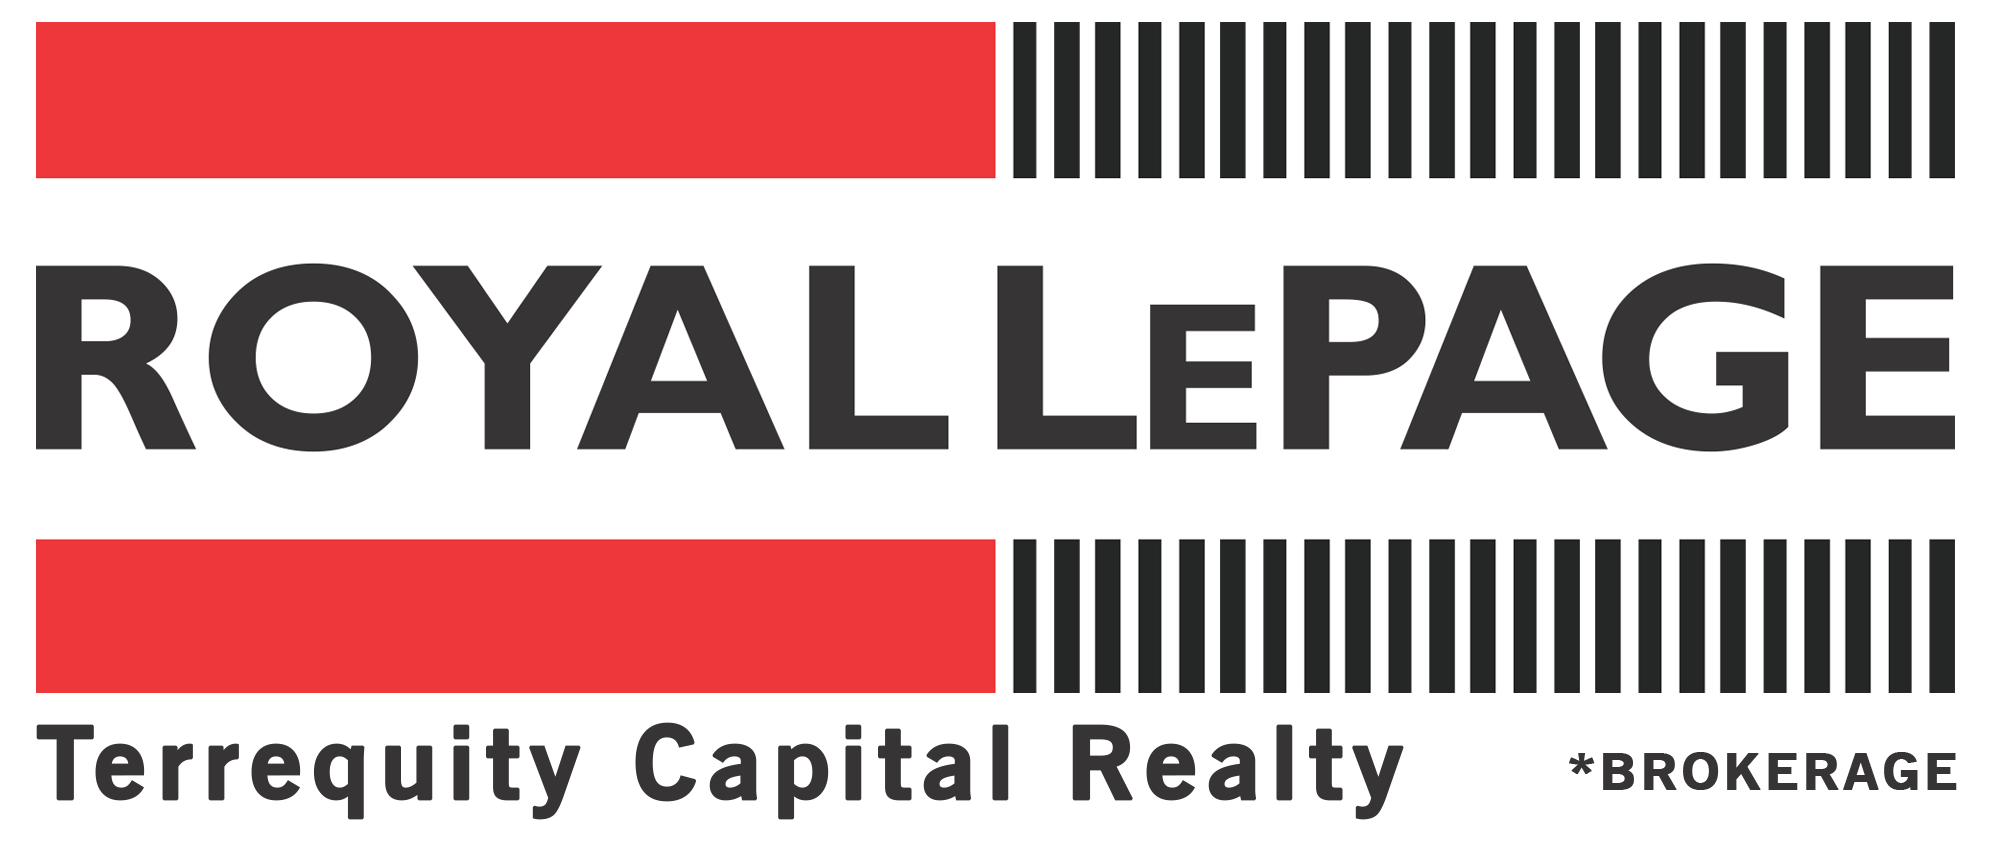 ROYAL LEPAGE TERREQUITY CAPITAL REALTY Brokerage*